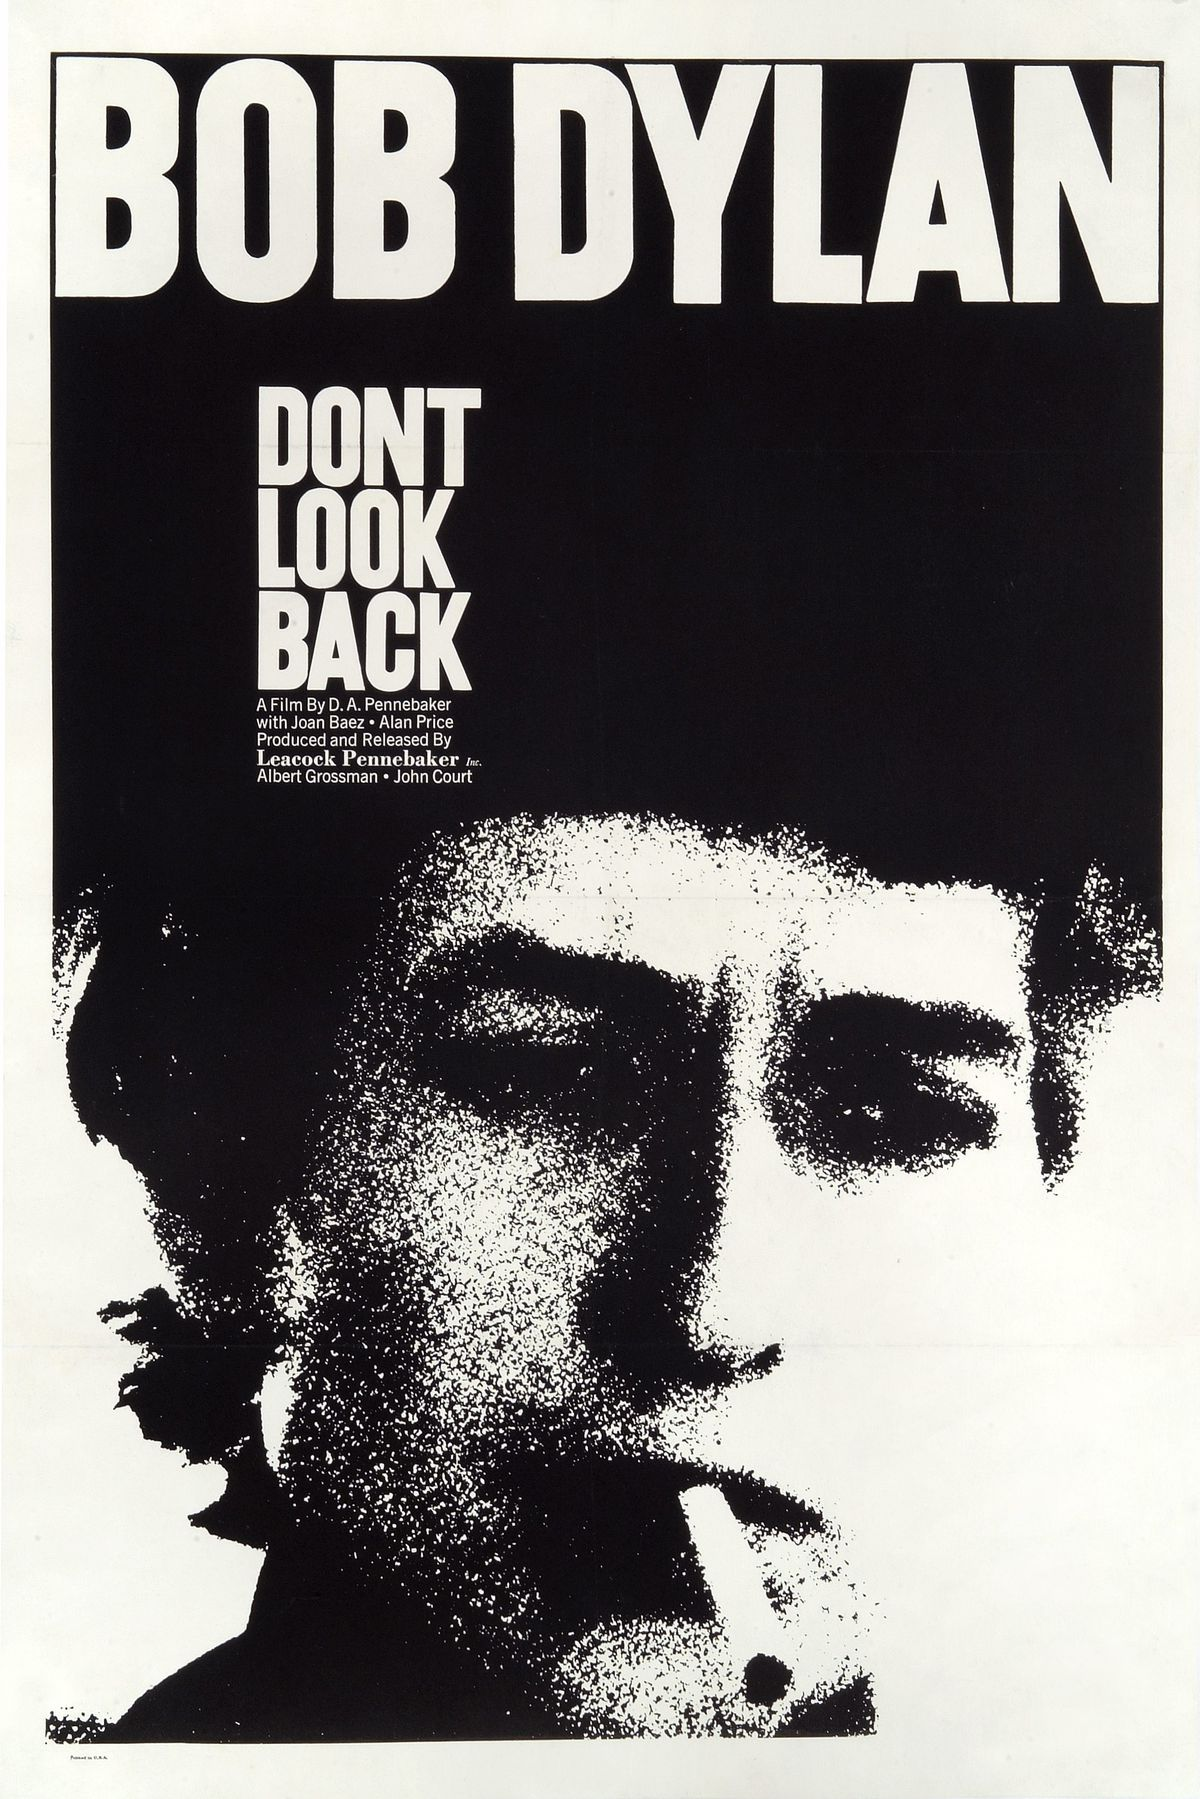 A poster for the 1967 music documentary Don't Look Back